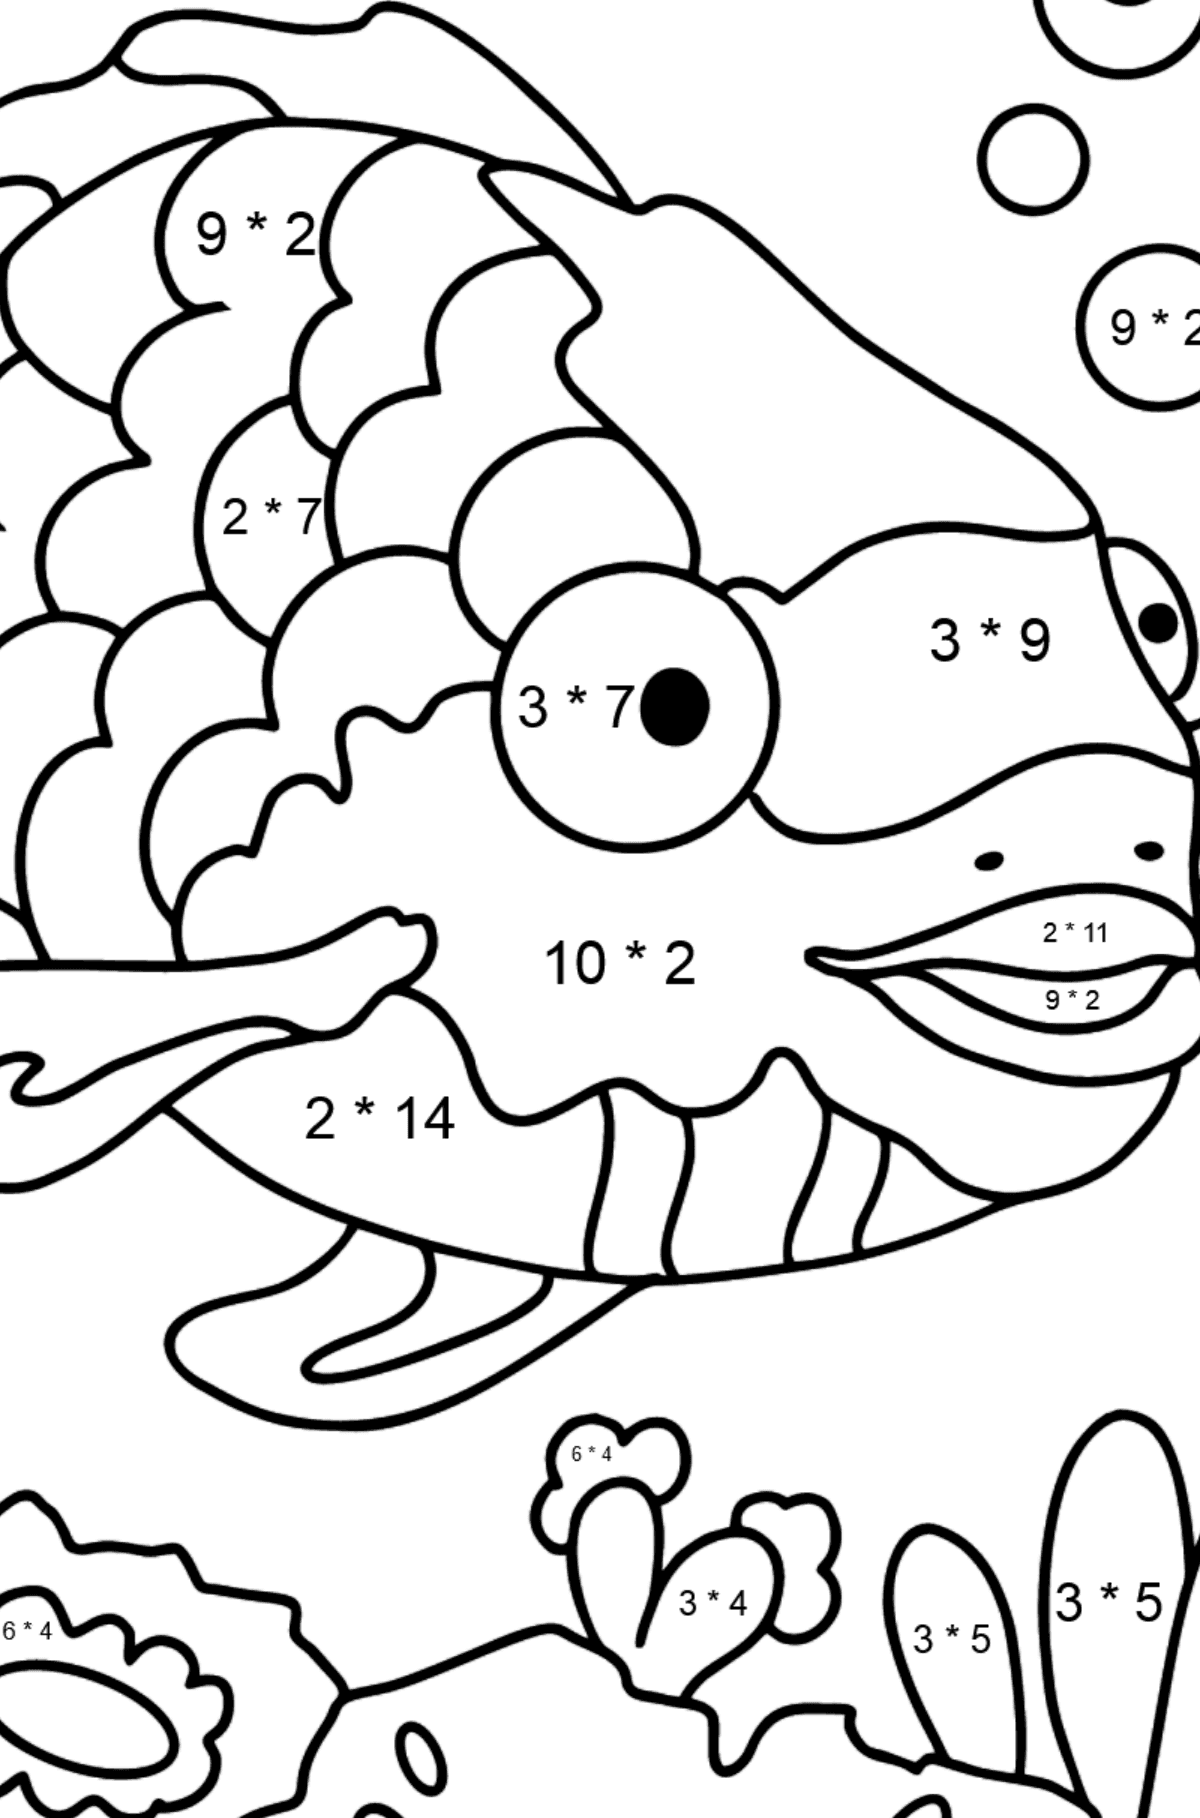 Coloring Page - A Fish with Beautiful Scales - Math Coloring - Multiplication for Kids